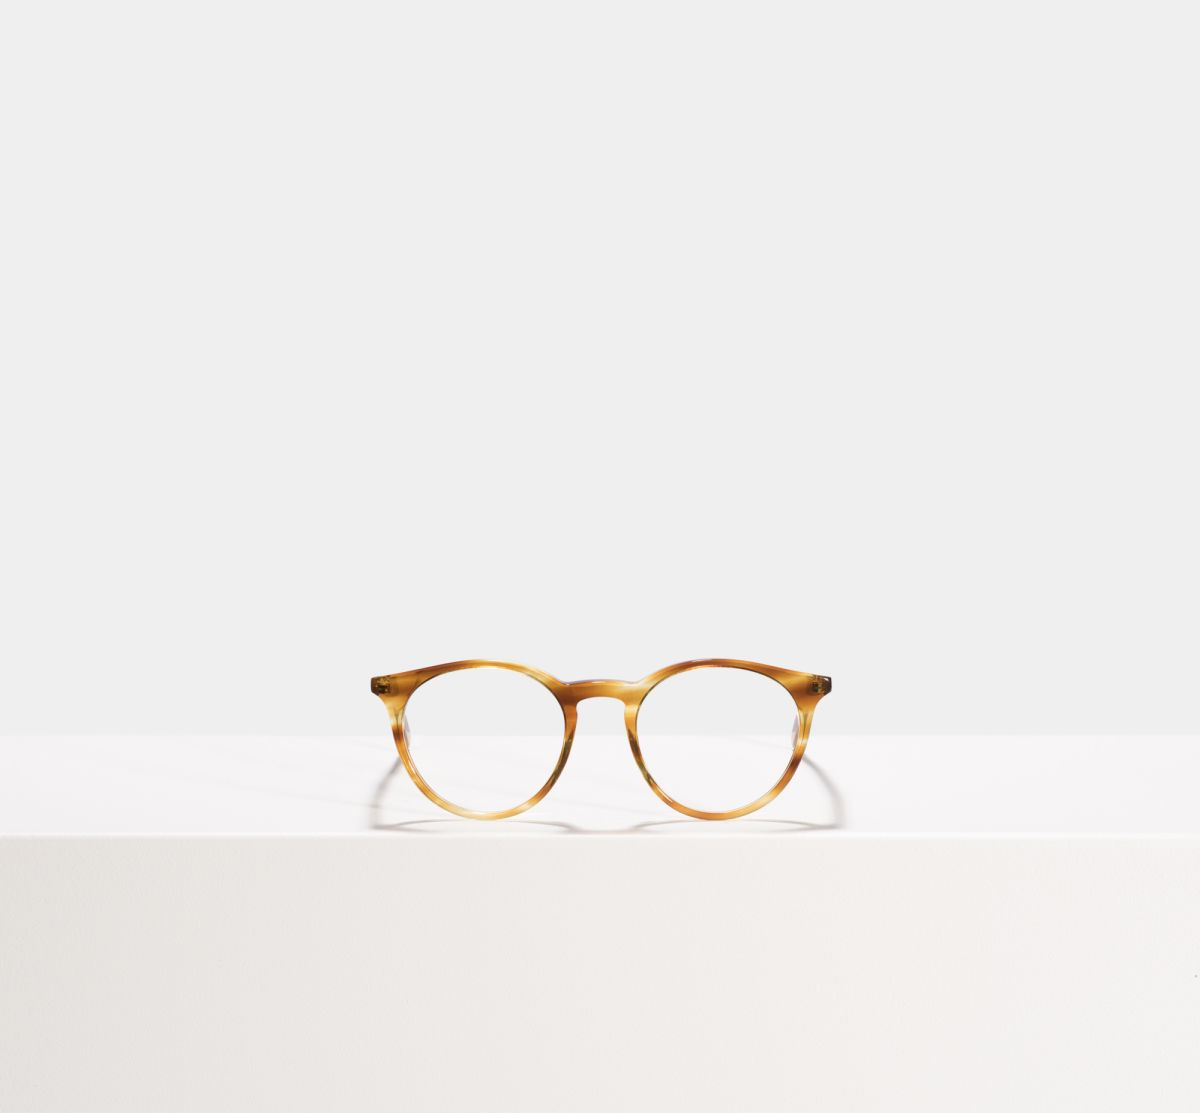 Easton rund Acetat glasses in Caramel Havana by Ace & Tate